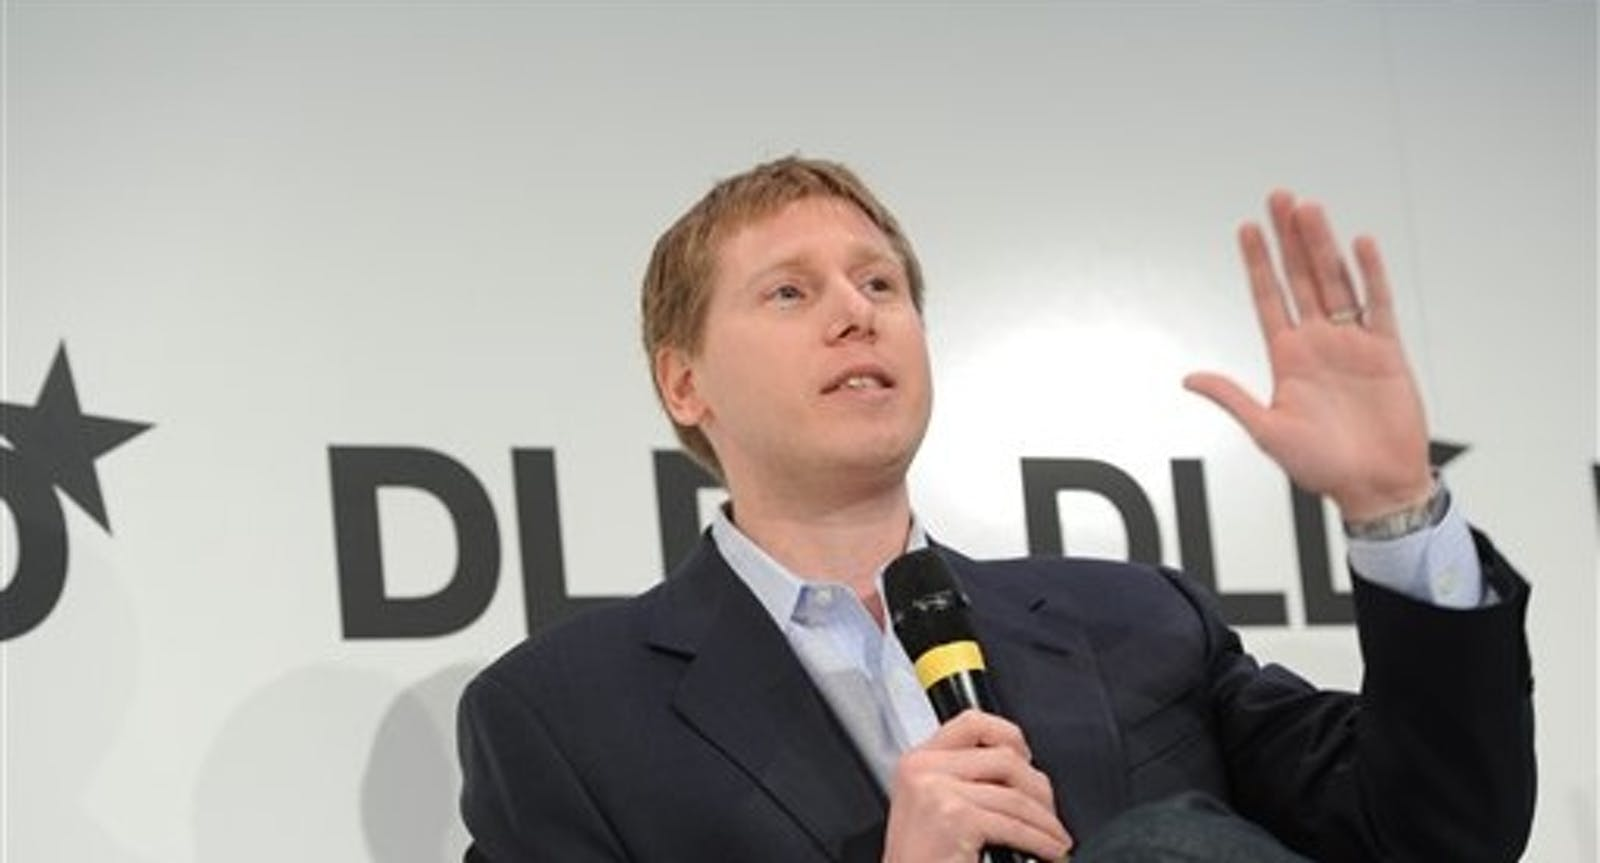 Barry Silbert, founder of the Digital Currency Group. Photo by Associated Press.